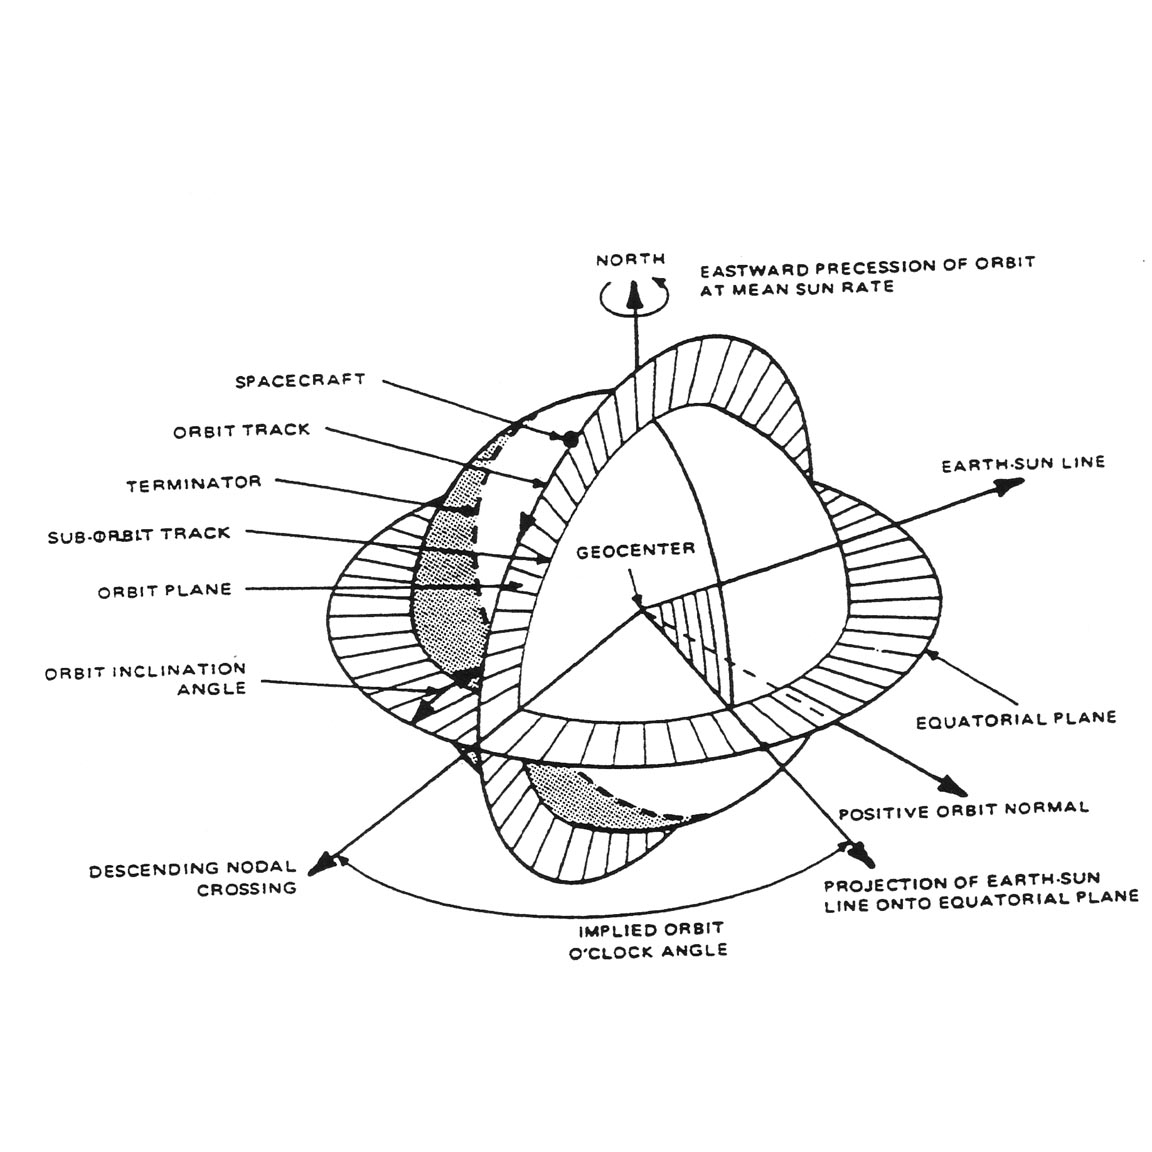 Geometry of a sun synchronous orbit landsat science schematic diagram illustrating the geometry of a sun synchronous orbit for the morning descending node ccuart Gallery